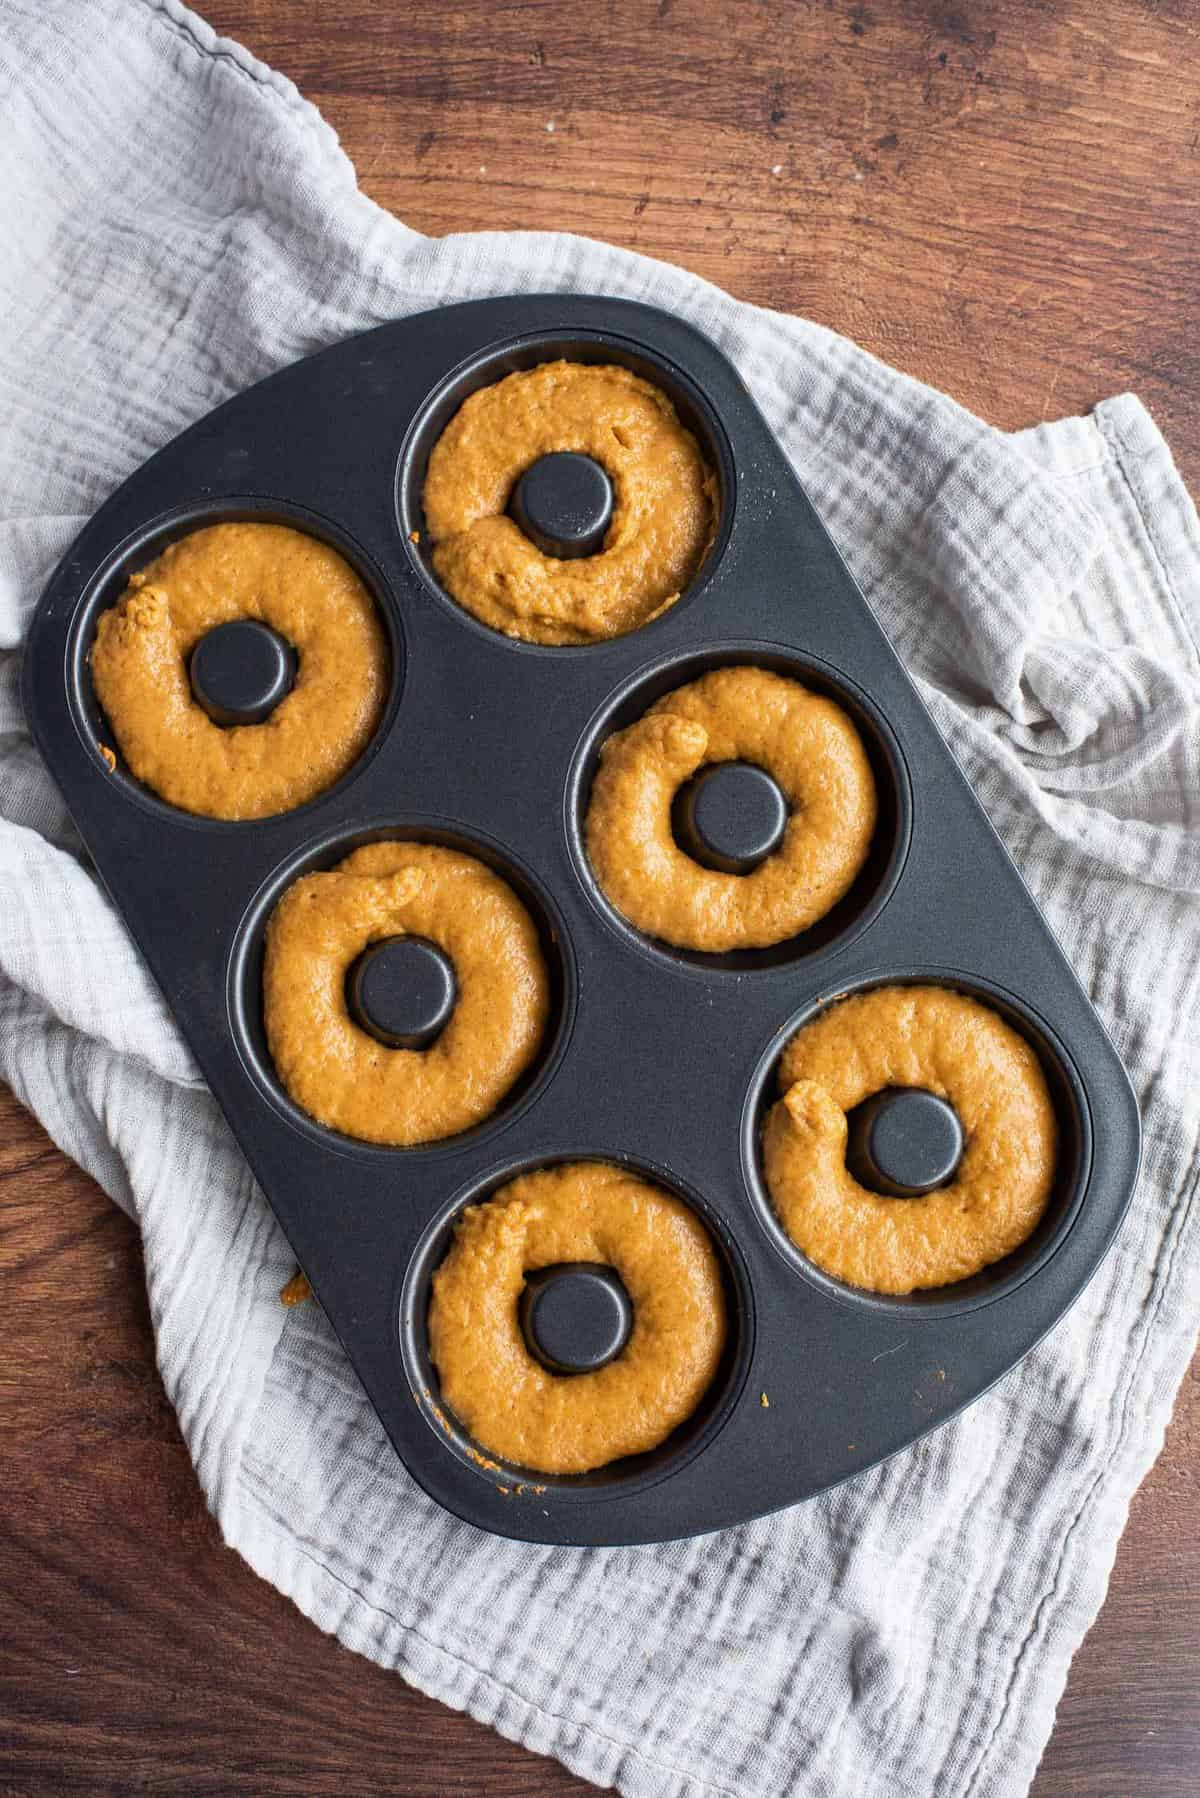 Unbaked pumpkin donuts in a black donut pan.